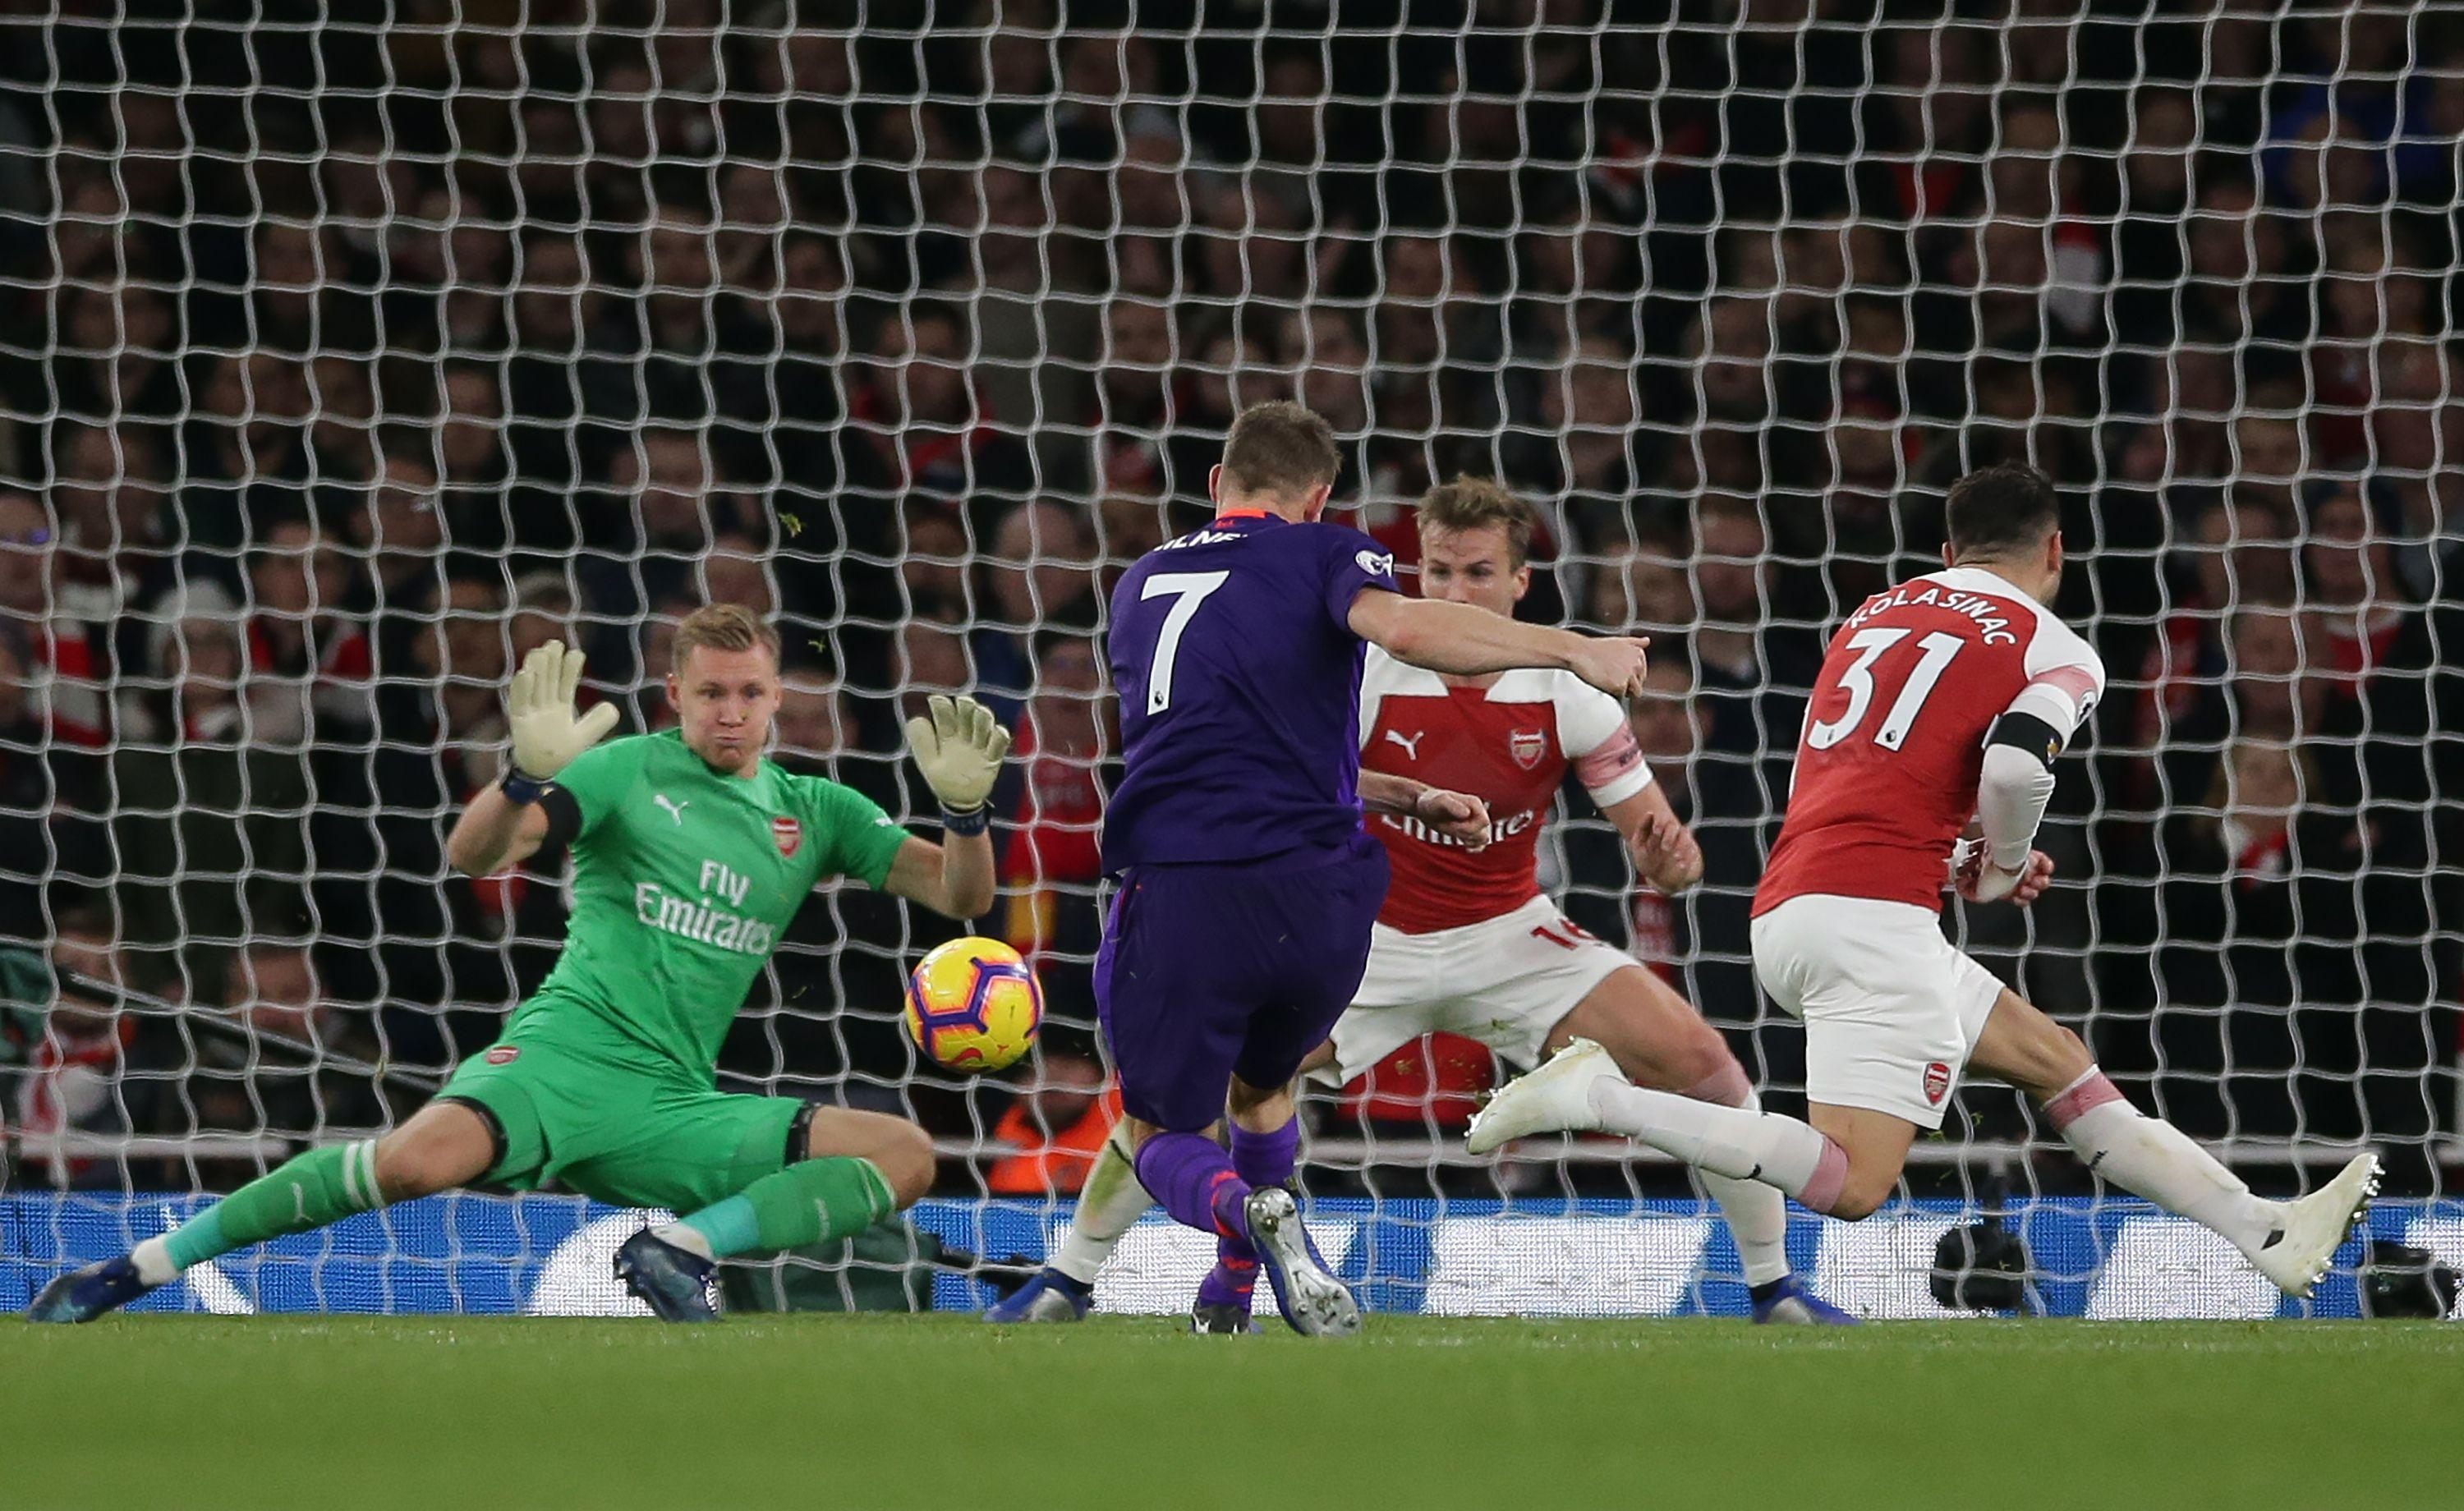 James Milner drives his low shot past Bernd Leno to fire Liverpool into the lead